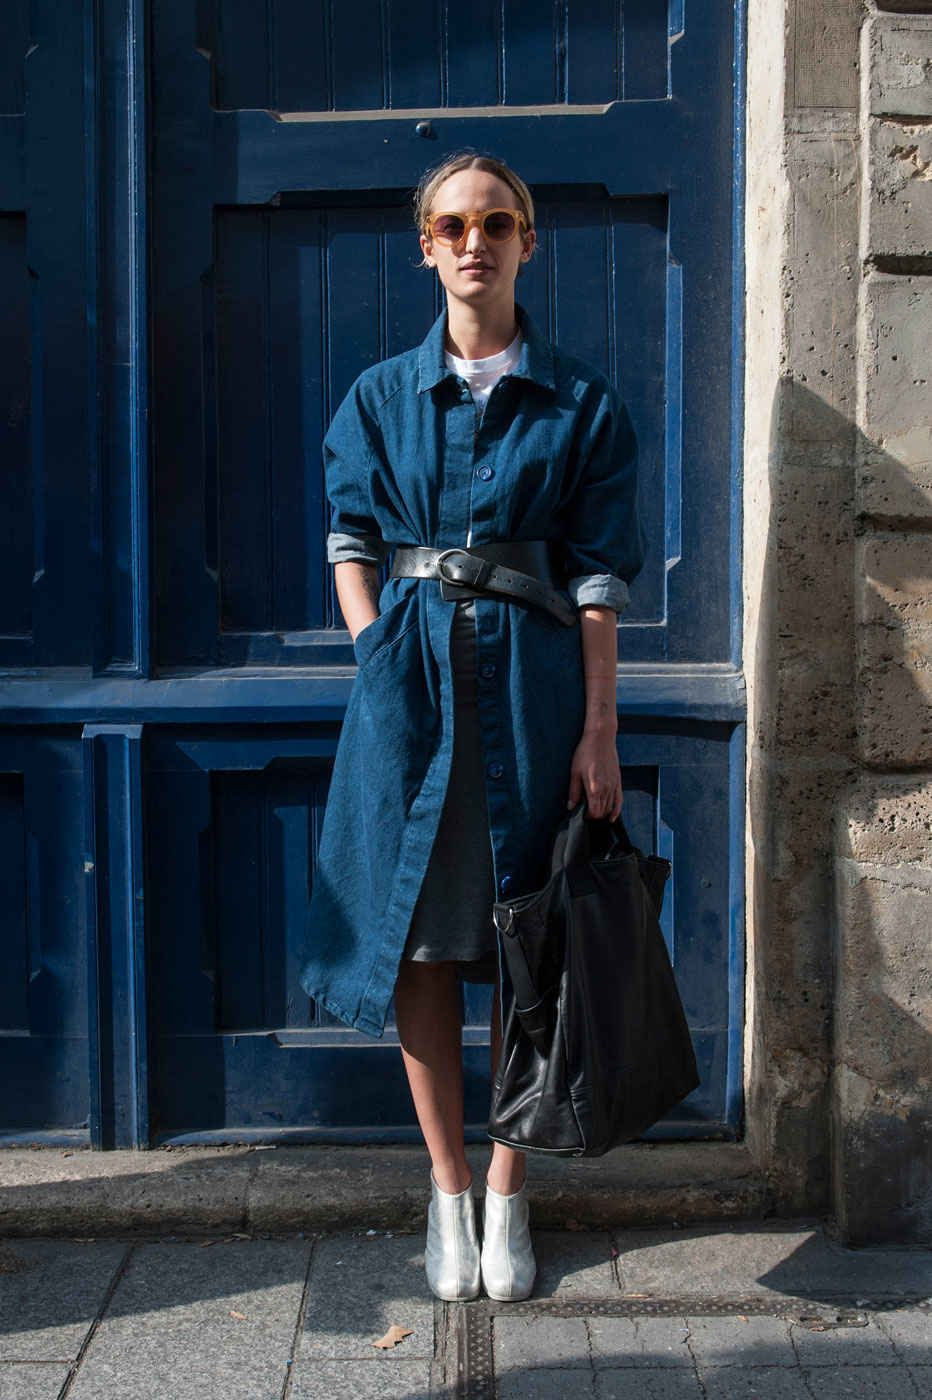 The Best Street Style From Paris Fashion Week So Far - Fashionista